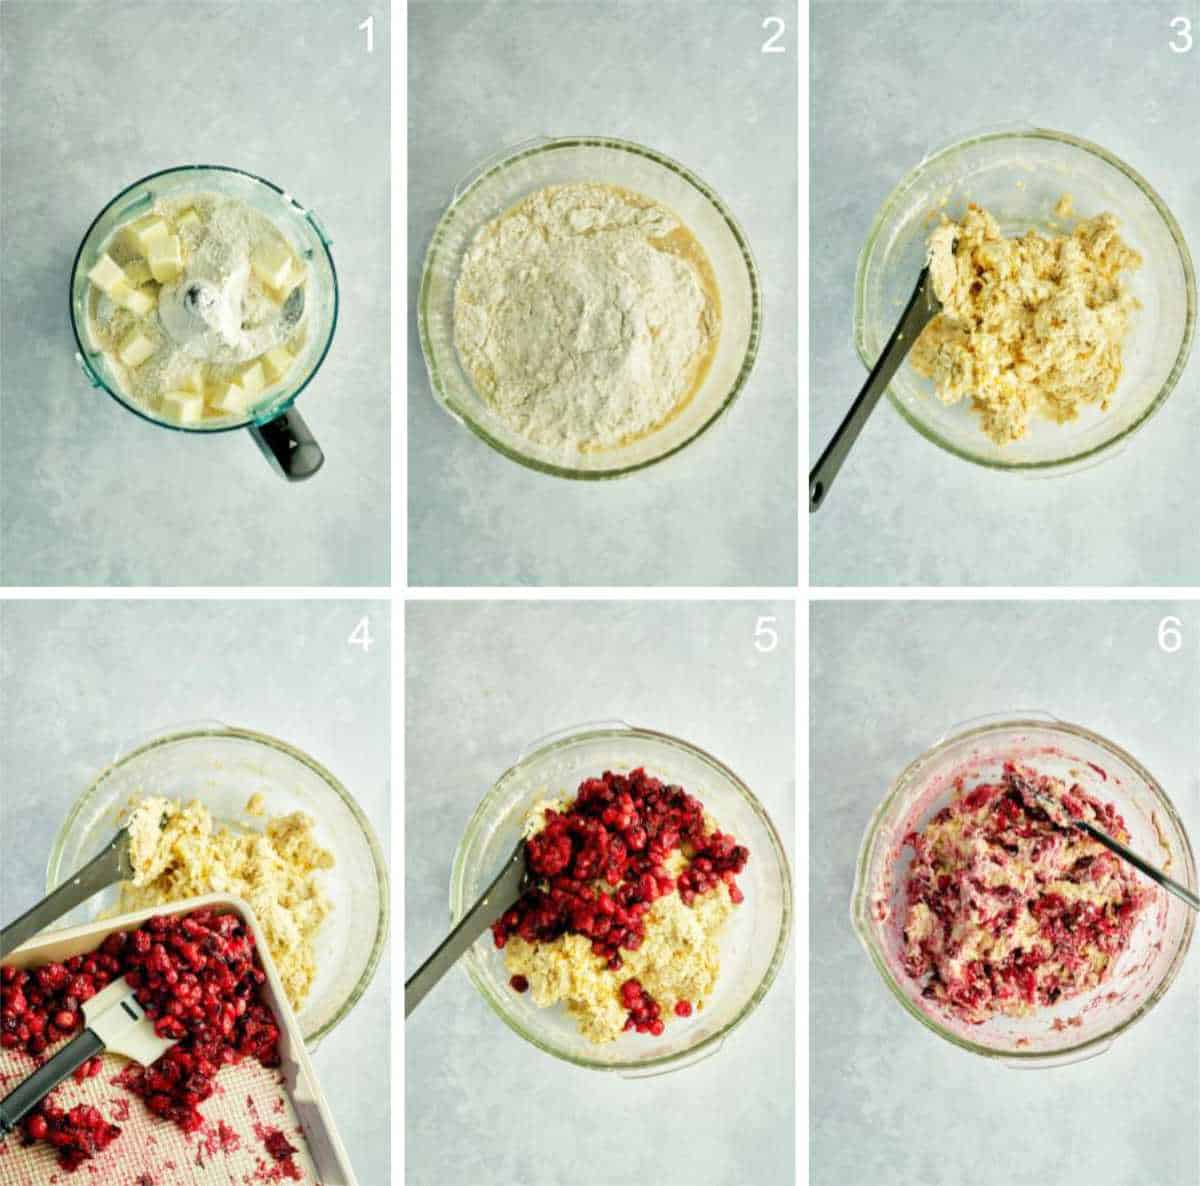 Mixing cranberry scone dough in a bowl.